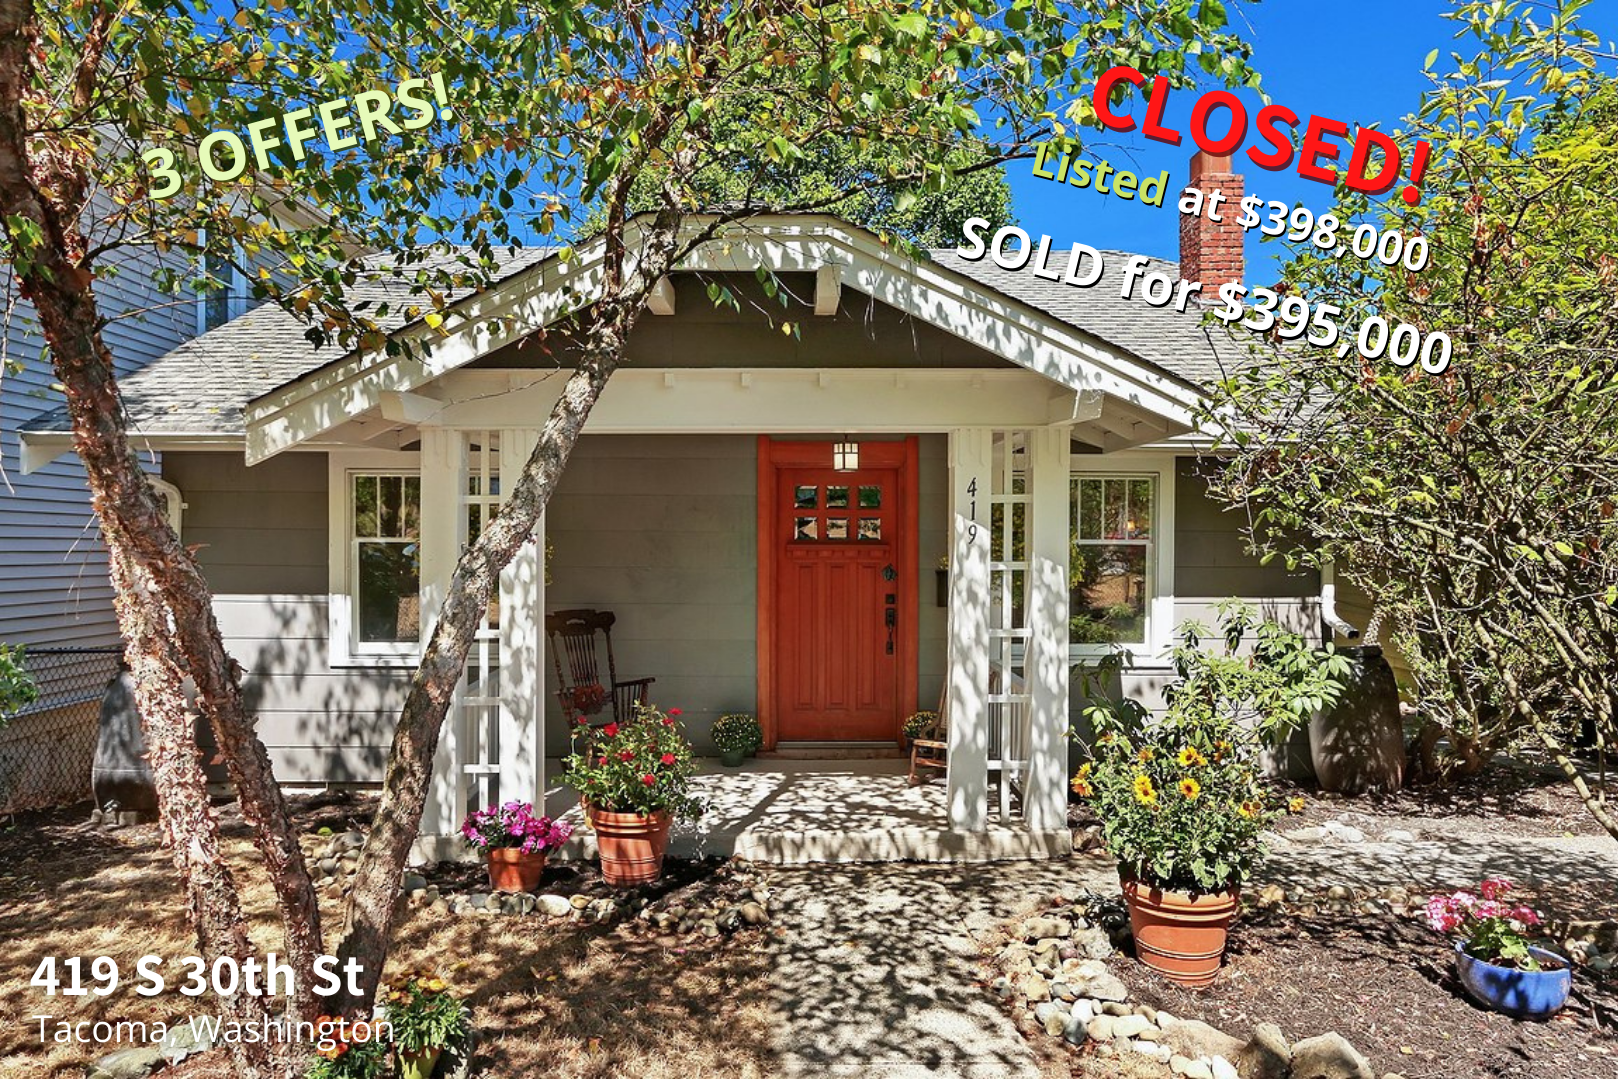 419 S 30th St - SOLD!